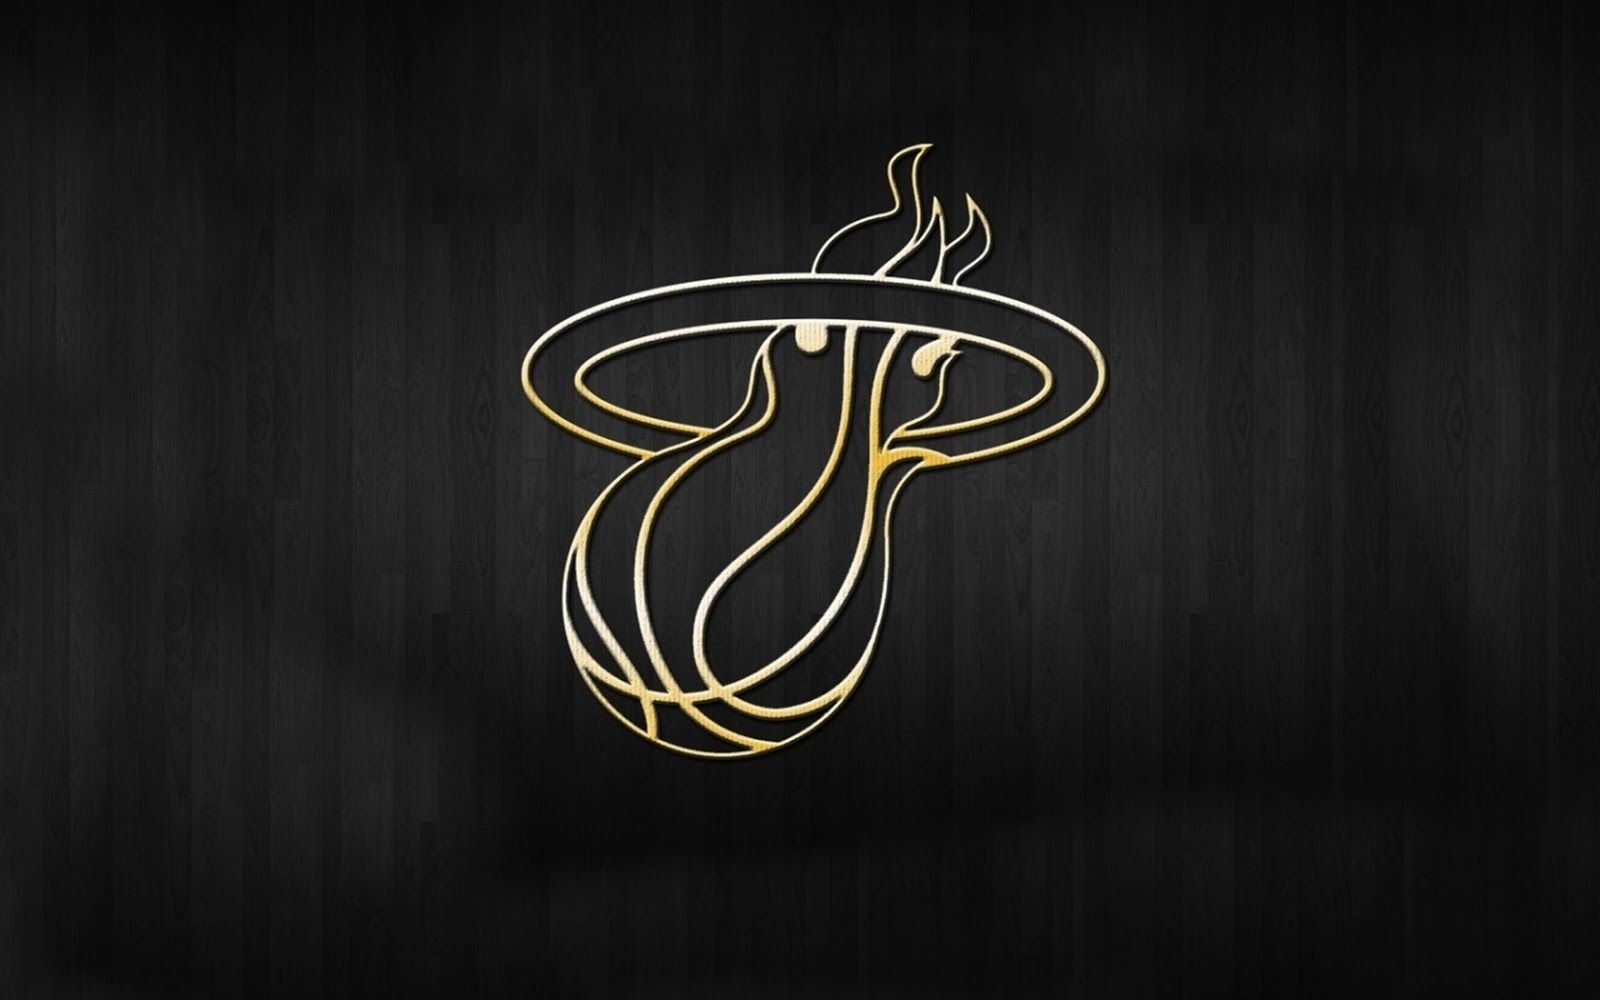 miami heat wallpapers hd2 - media file | pixelstalk